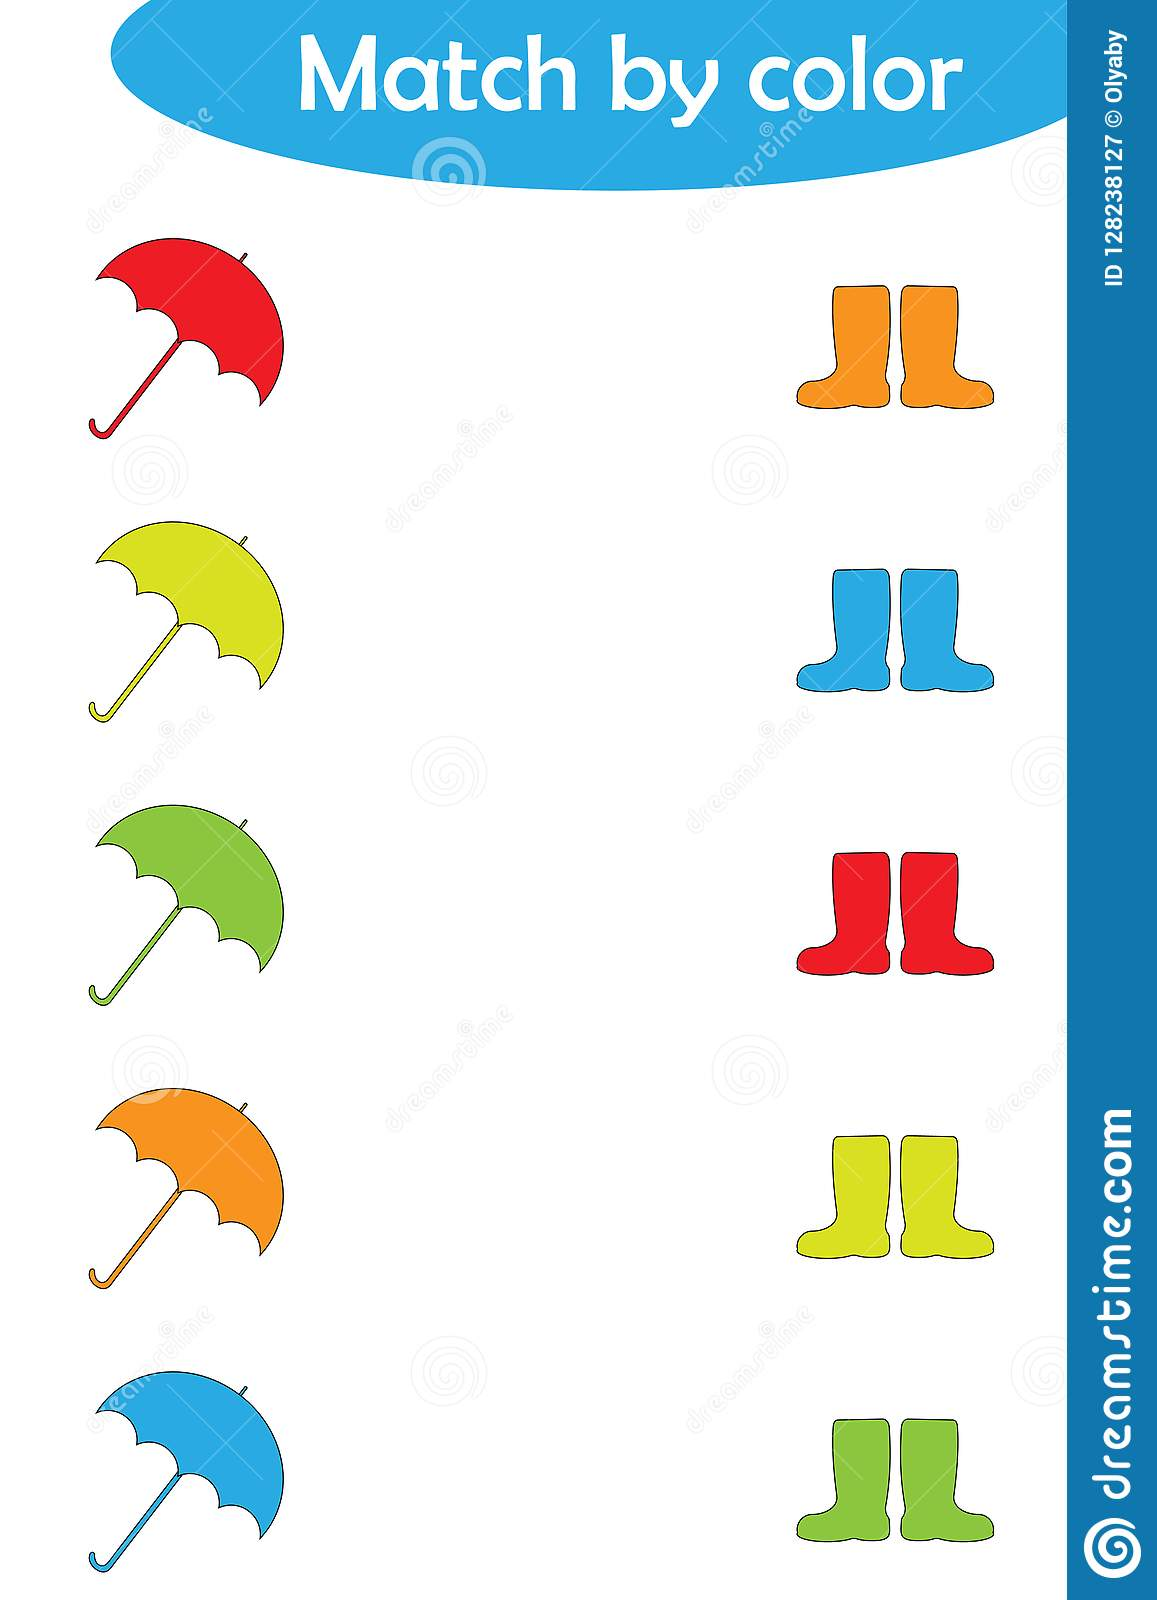 matching game for children connect umbrellas and boots by color preschool worksheet activity. Black Bedroom Furniture Sets. Home Design Ideas